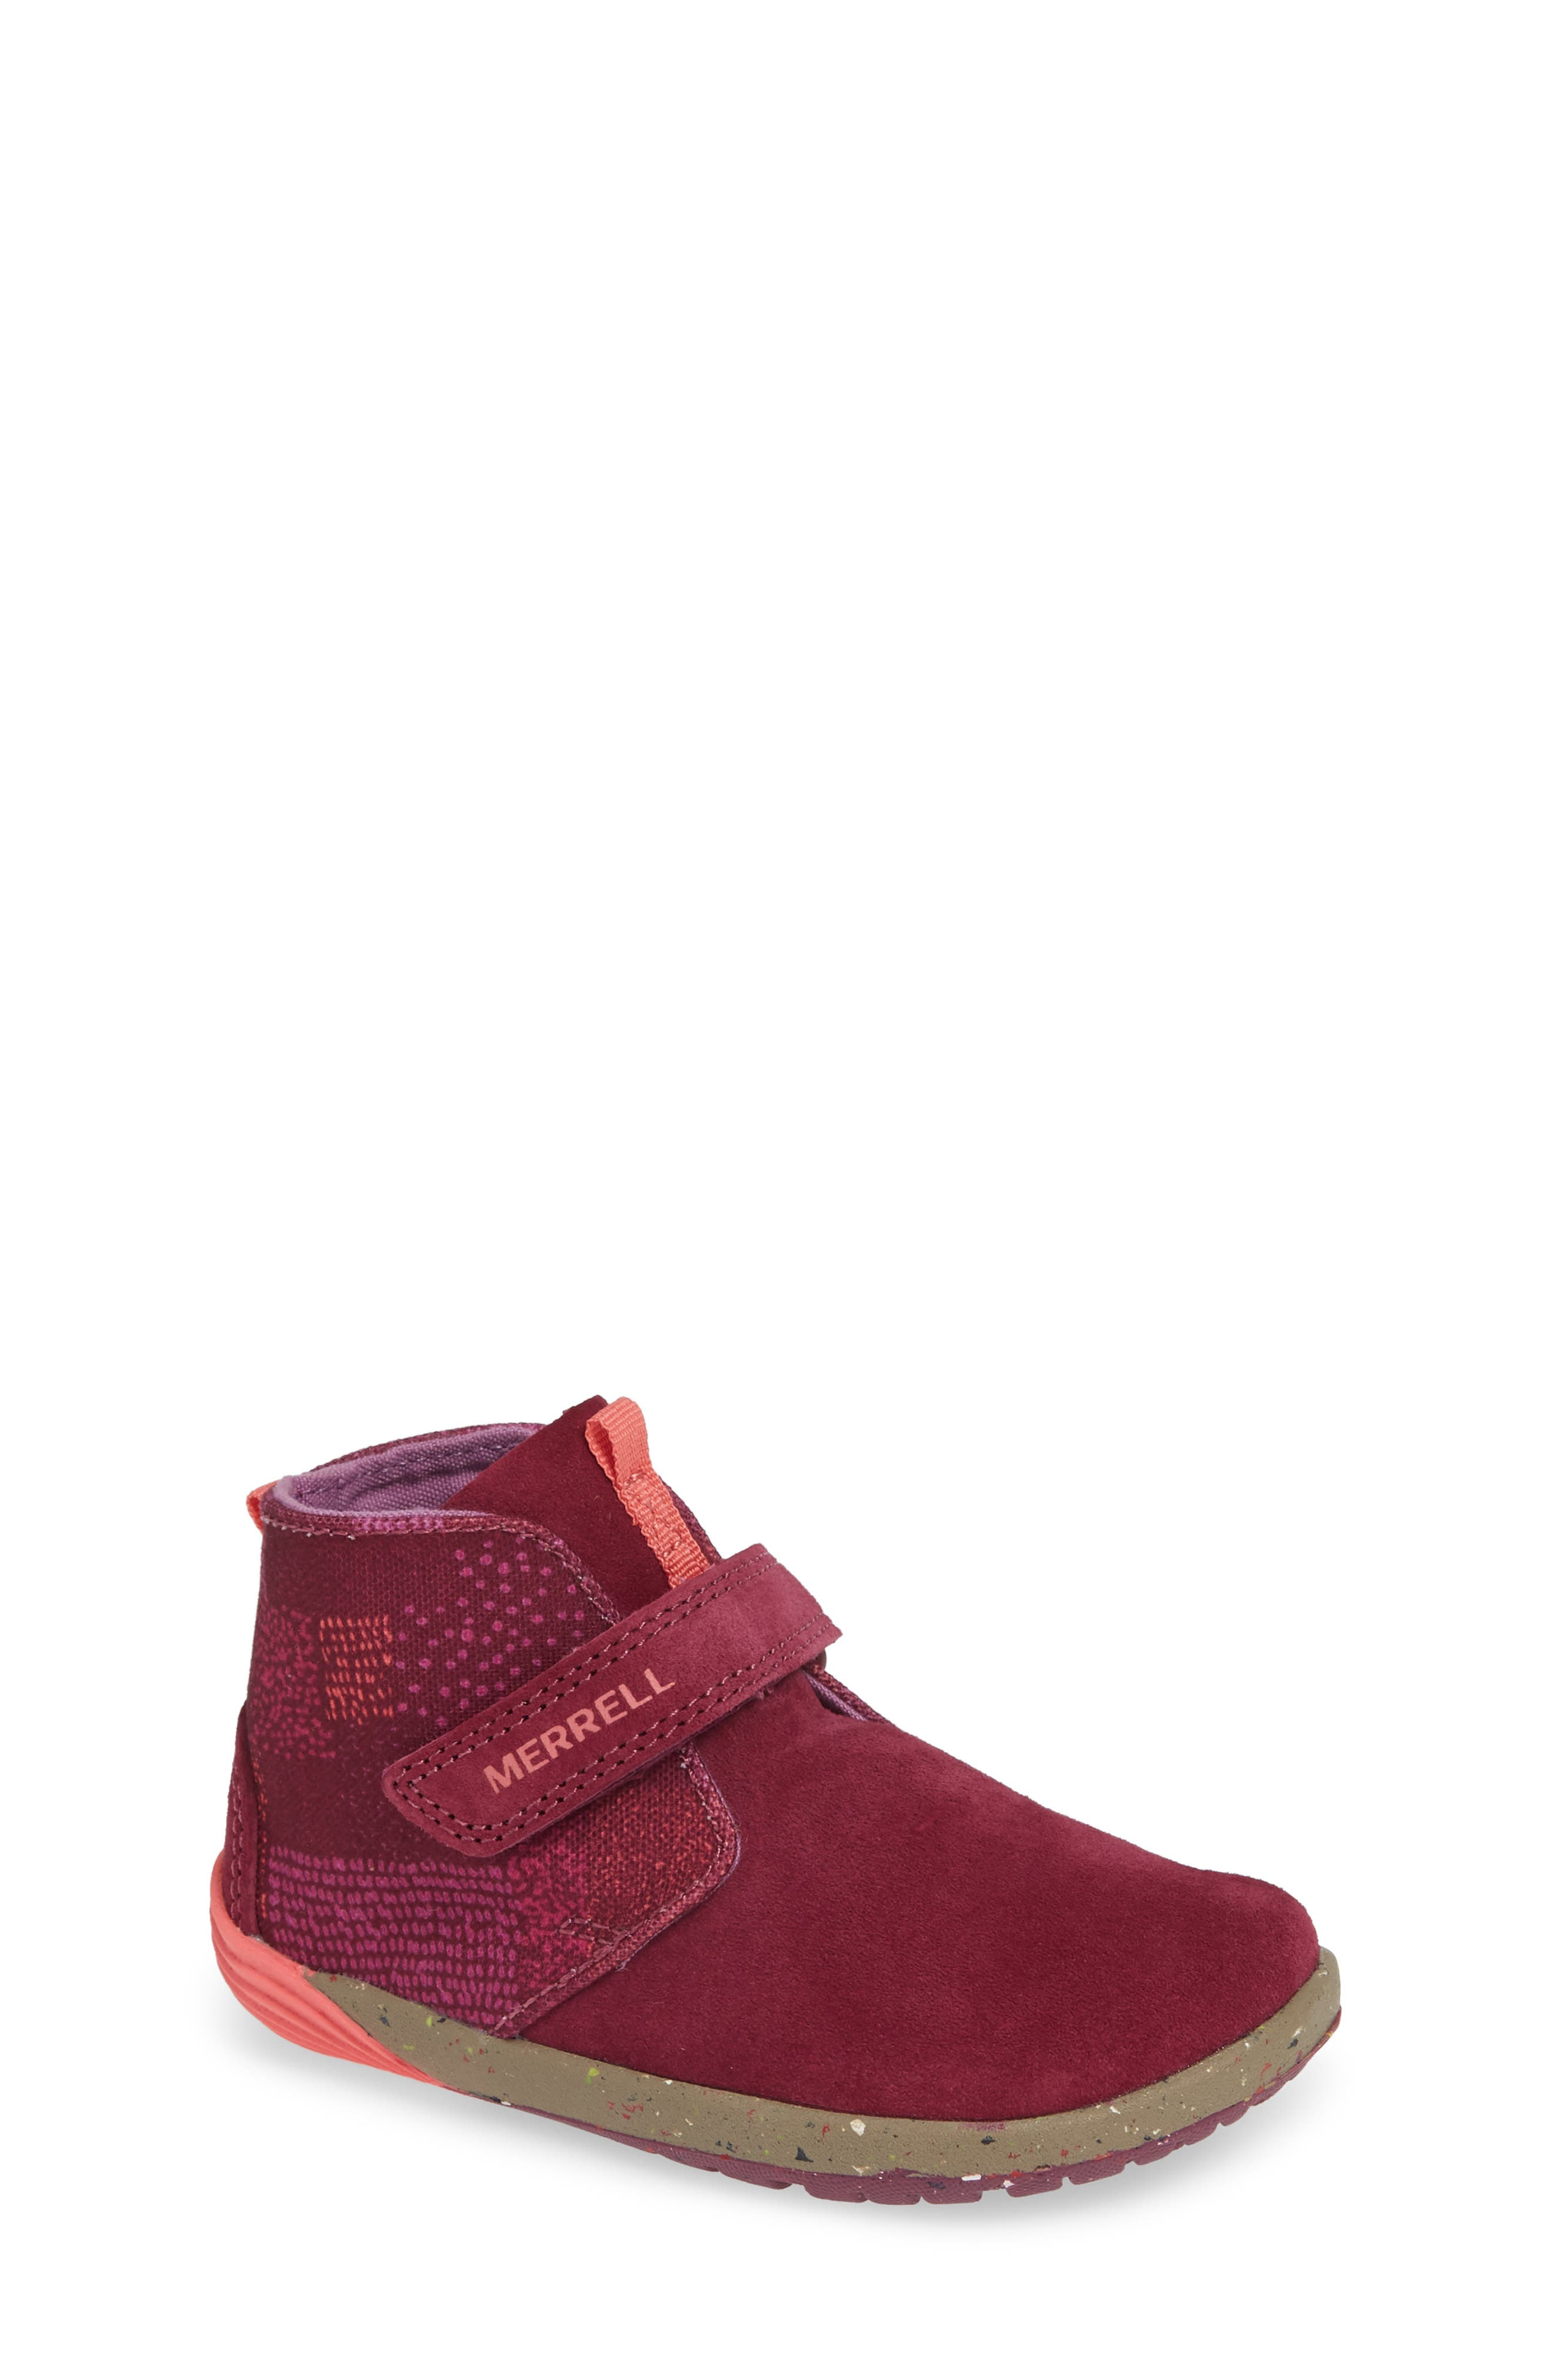 MERRELL Bare Steps Boot, Main, color, BERRY